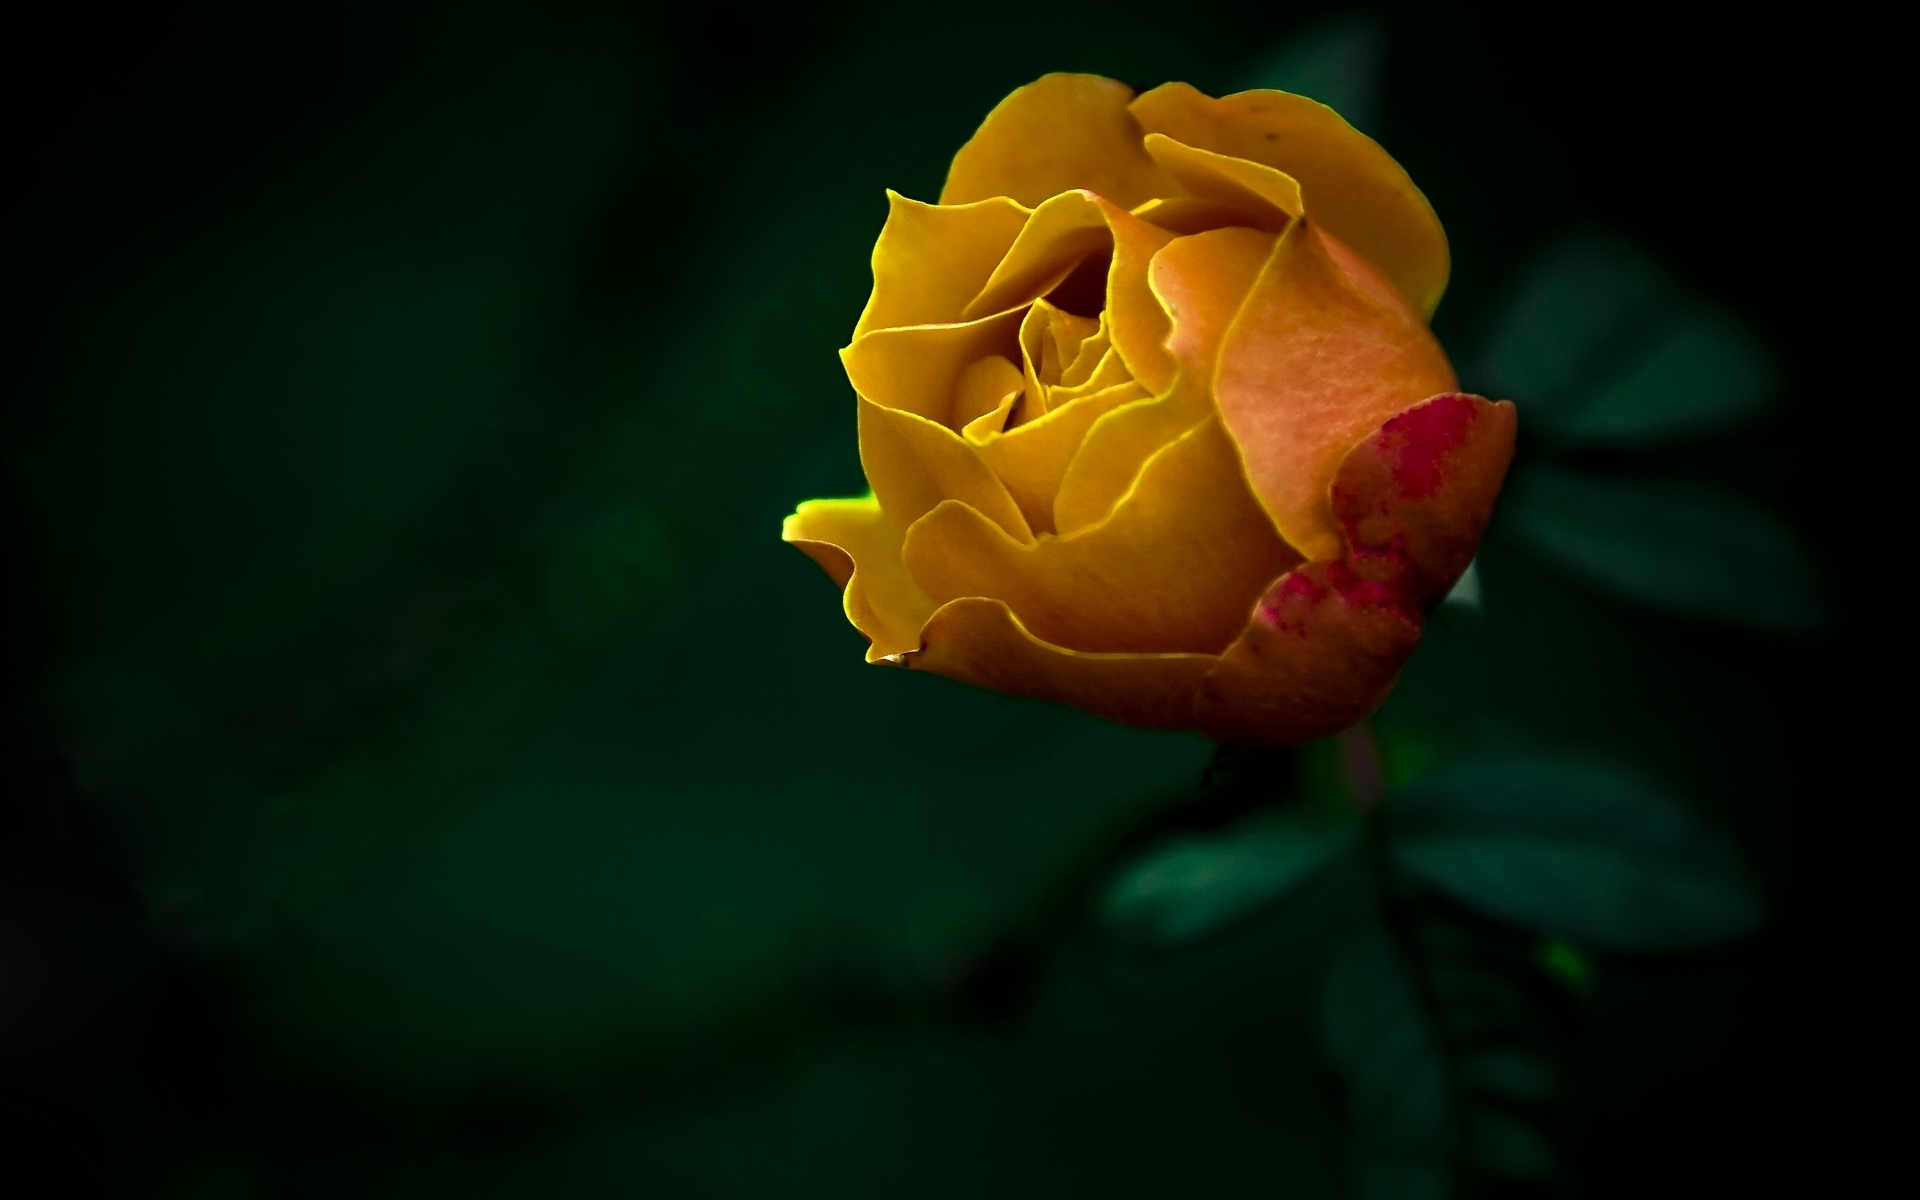 Yellow Rose Wallpapers High Quality Download Free 1920x1200